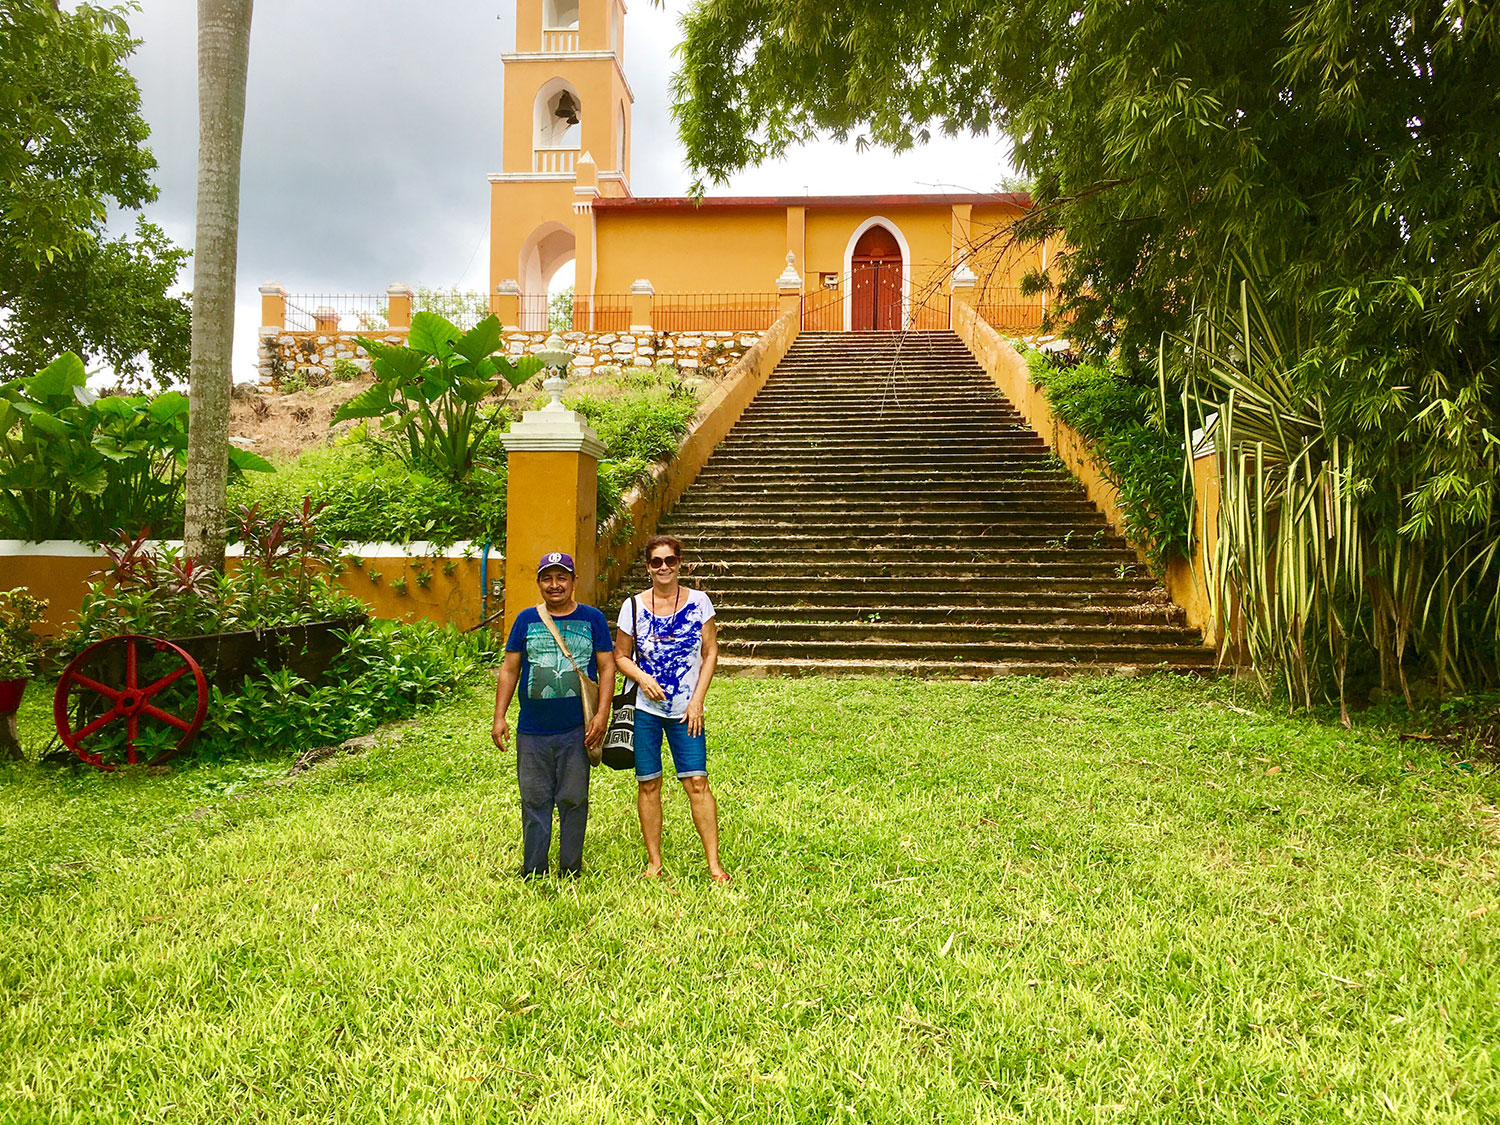 Outside the Aké hacienda chapel with our guide José.